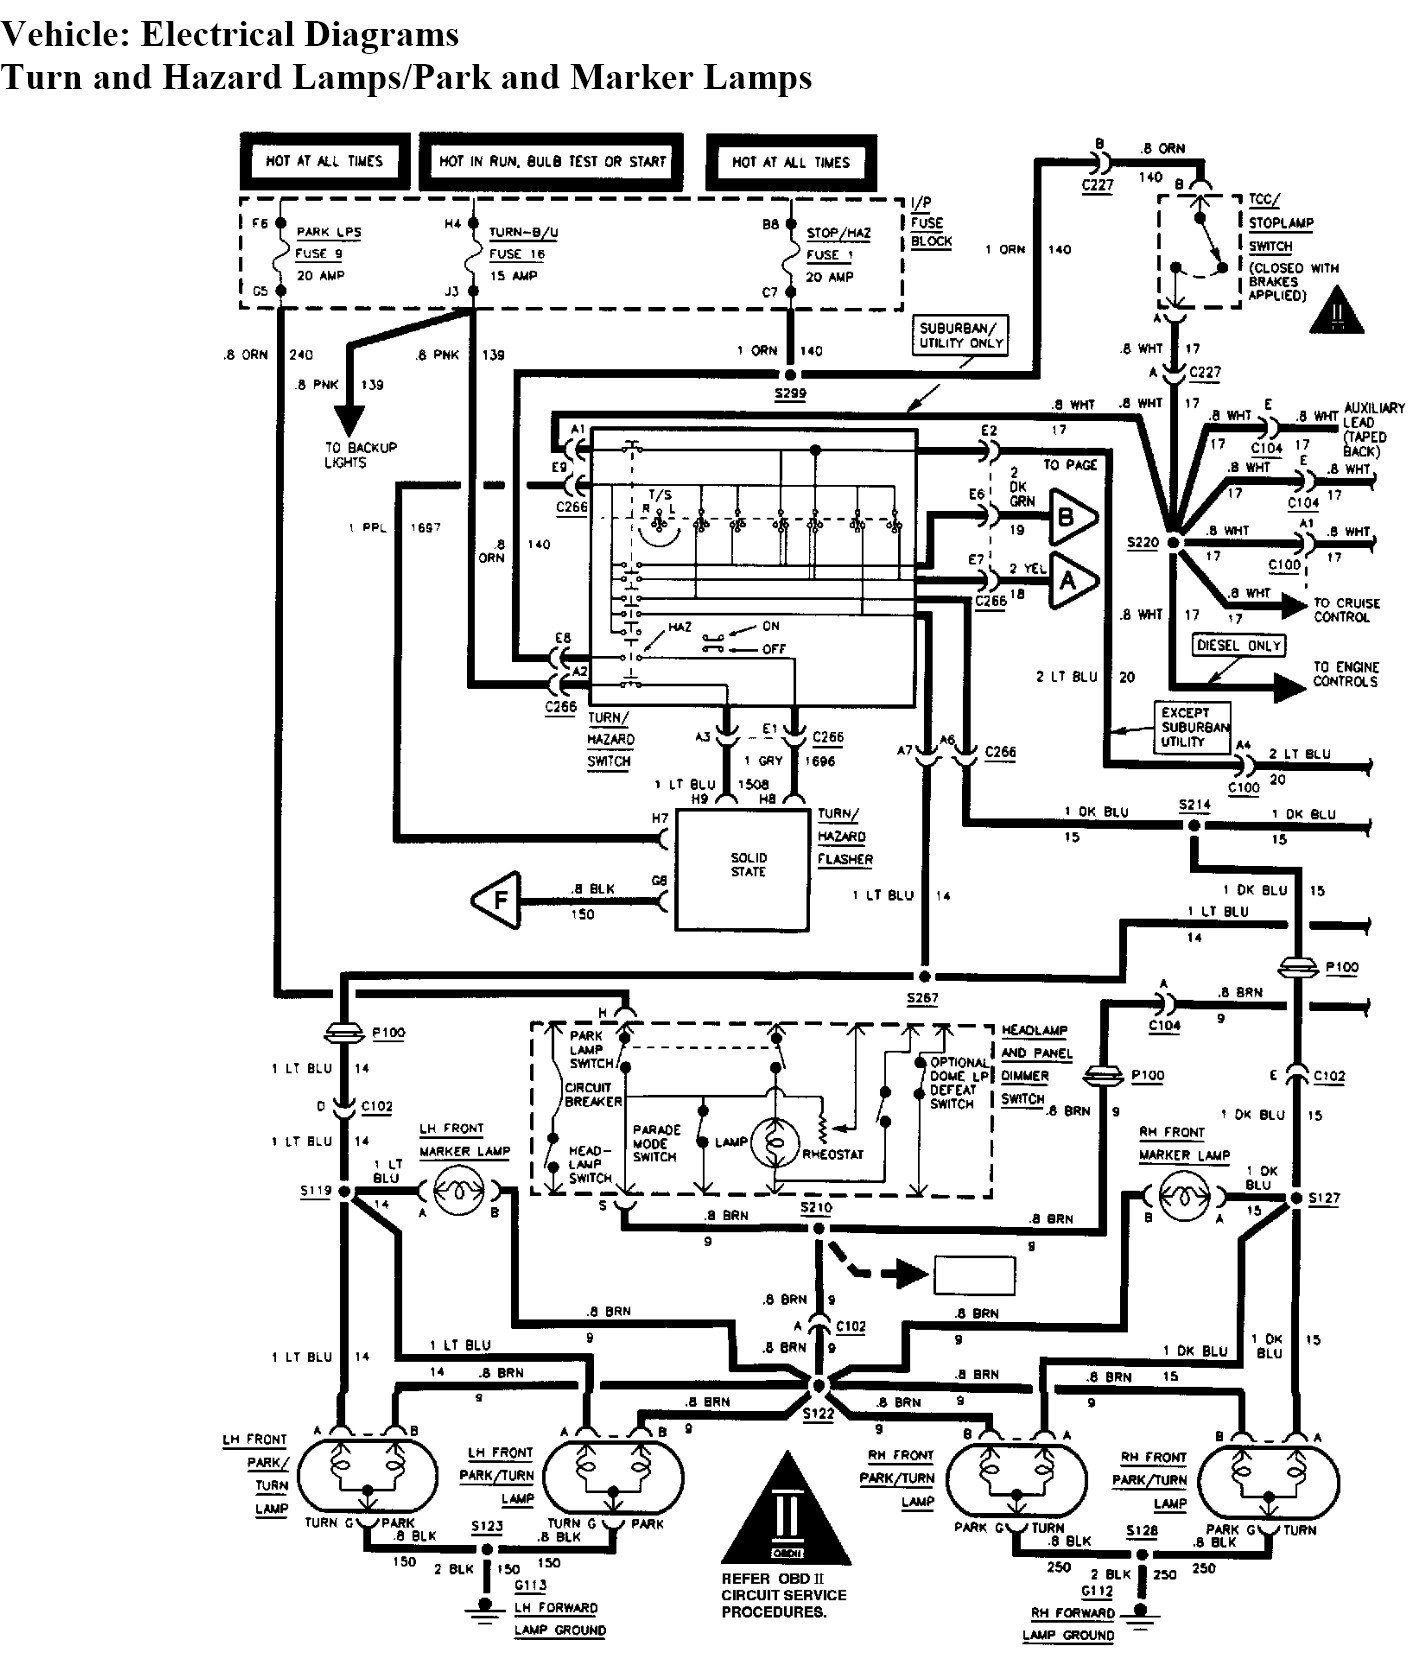 Dodge Caravan Tail Light Wiring Diagram Wiring Diagram Image